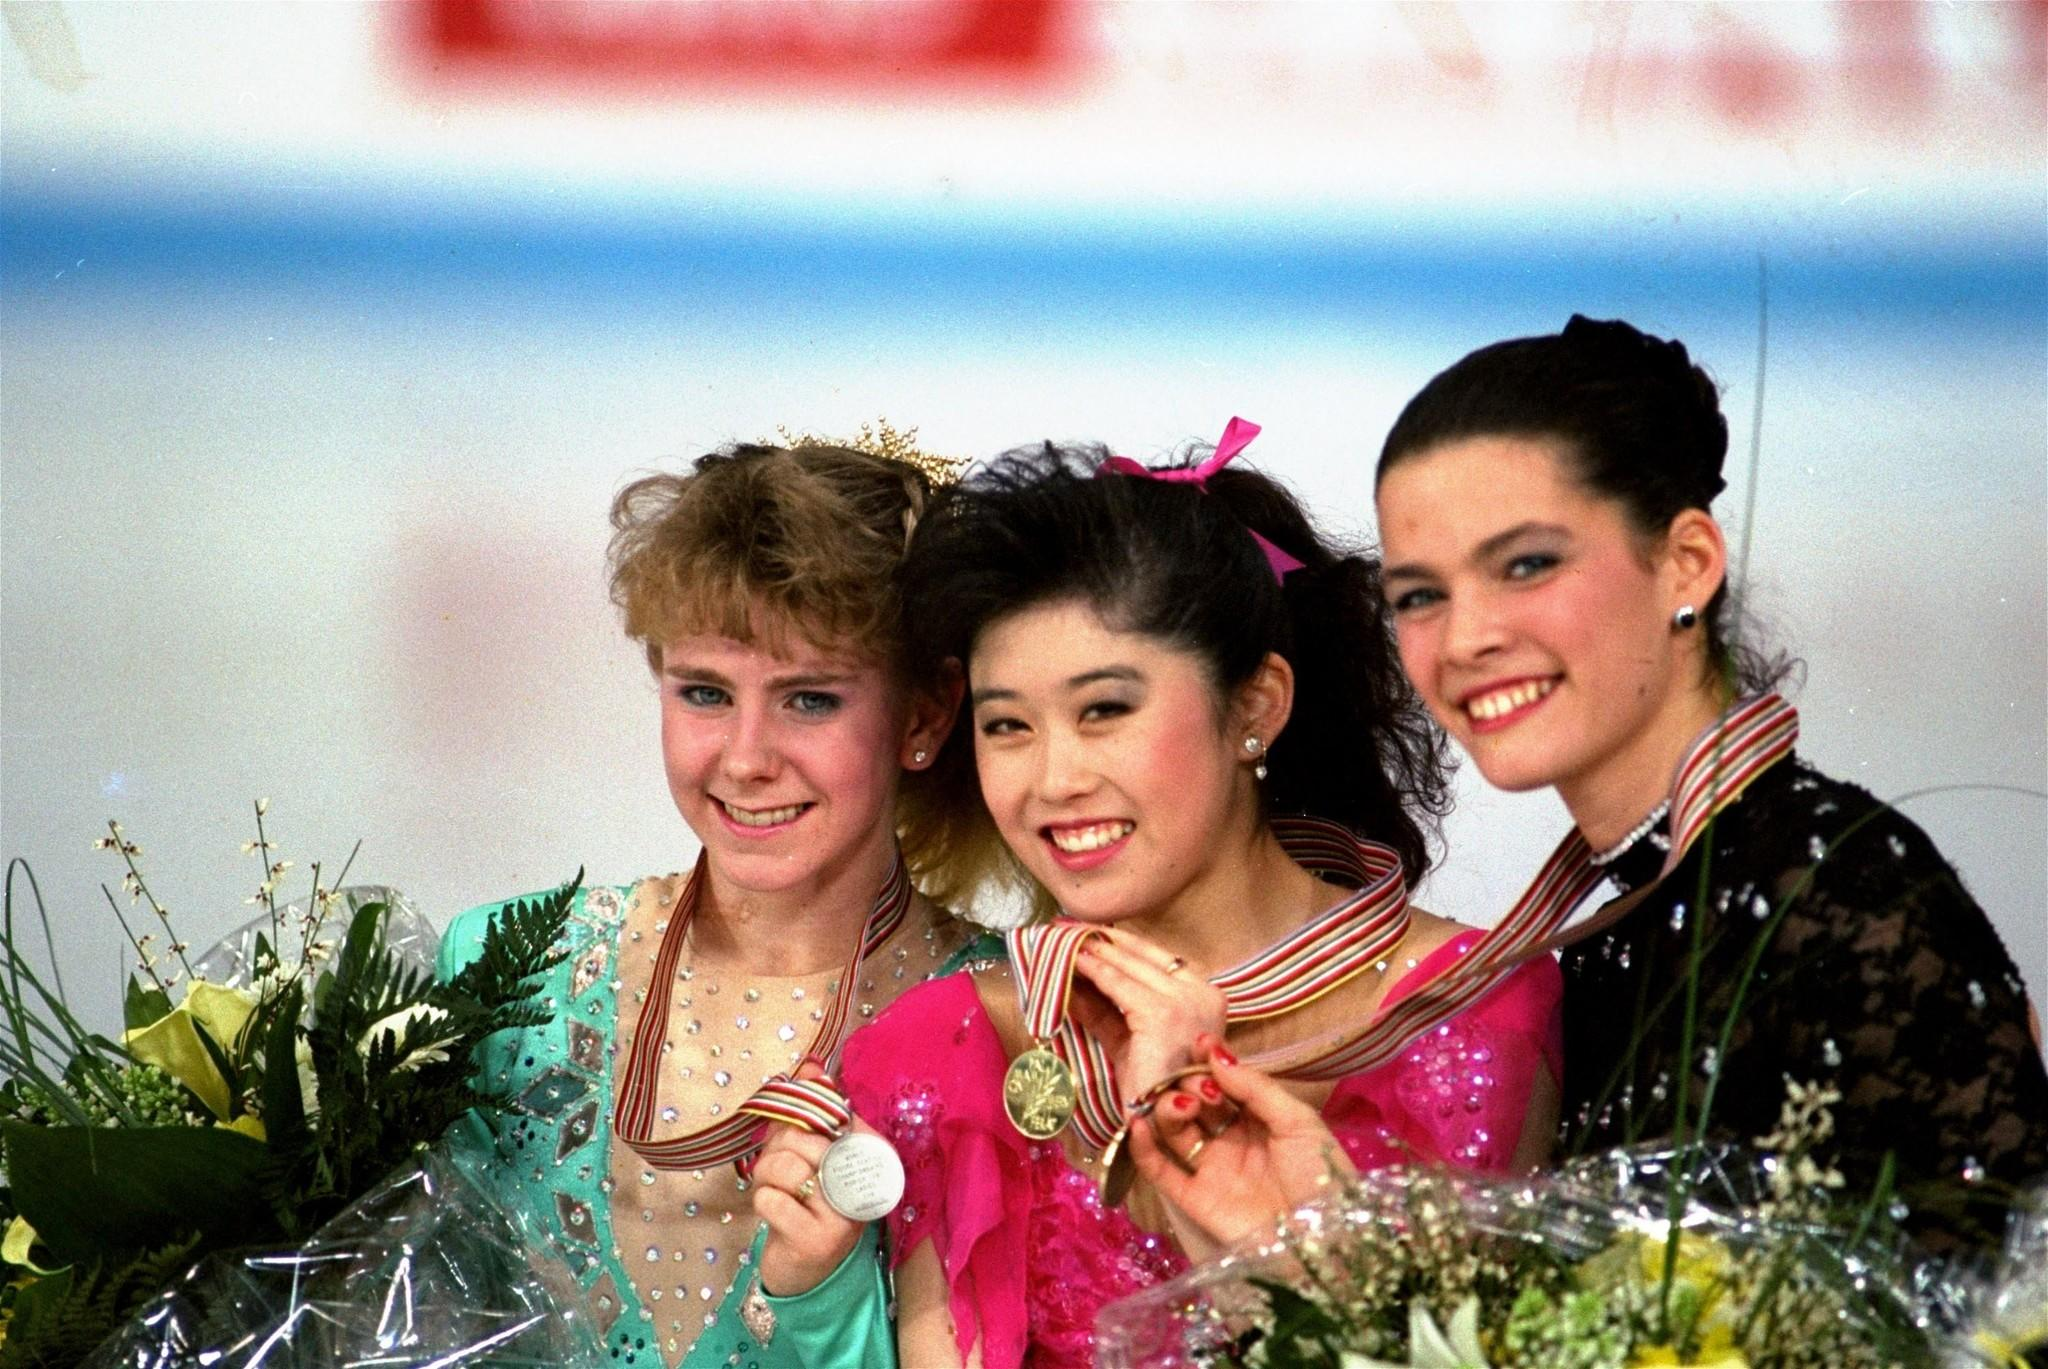 Tonya Harding, left, Kristi Yamaguchi and Nancy Kerrigan after the finals of the 1991 World Figure Skating Championships. (Diether Endlicher / Associated Press)